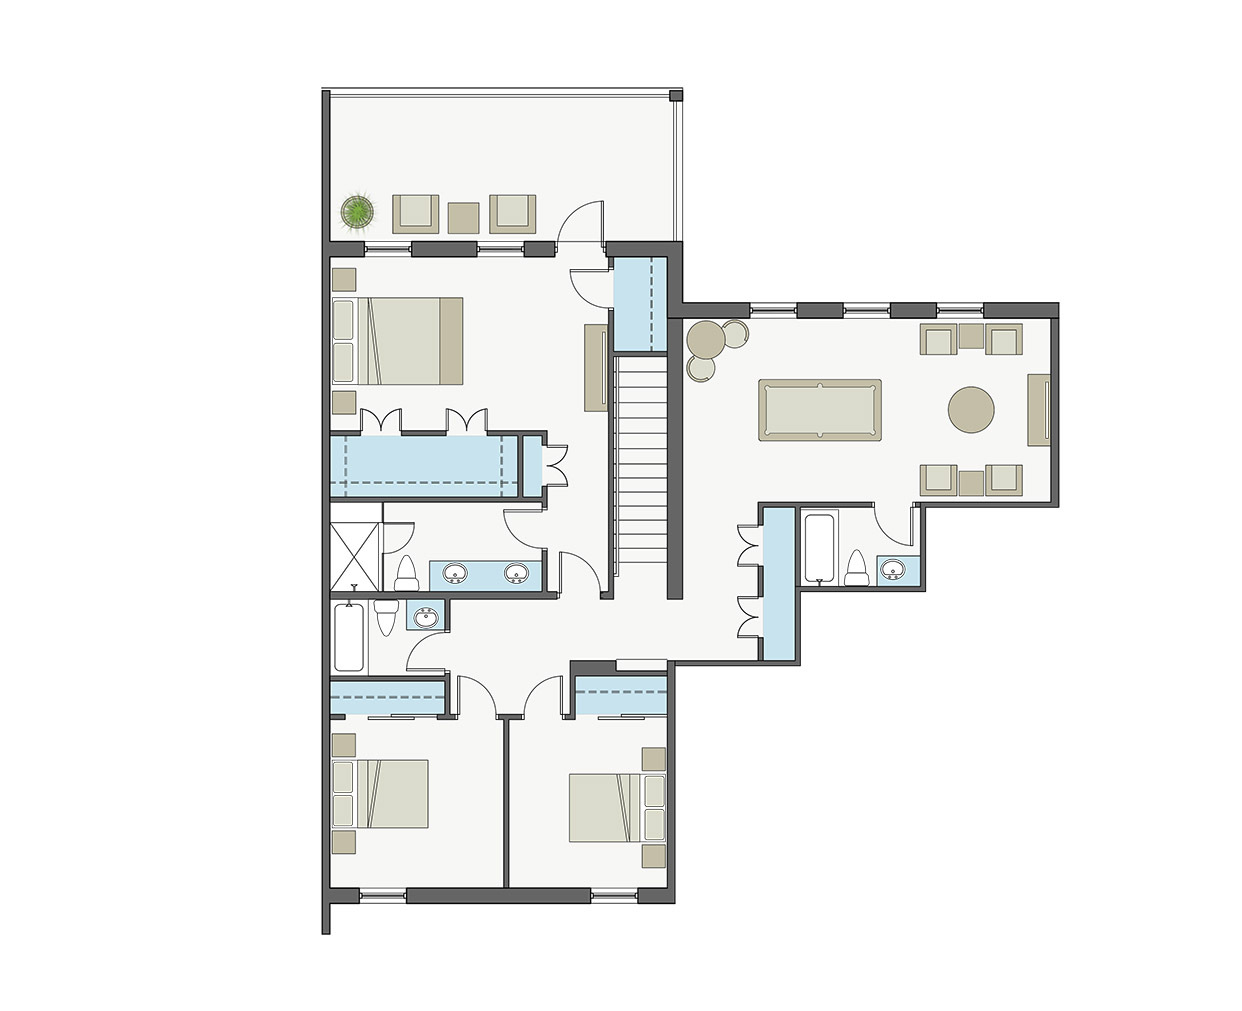 Waterfront townhomes periwinkle grand cayman a for 4200 sq ft house plans